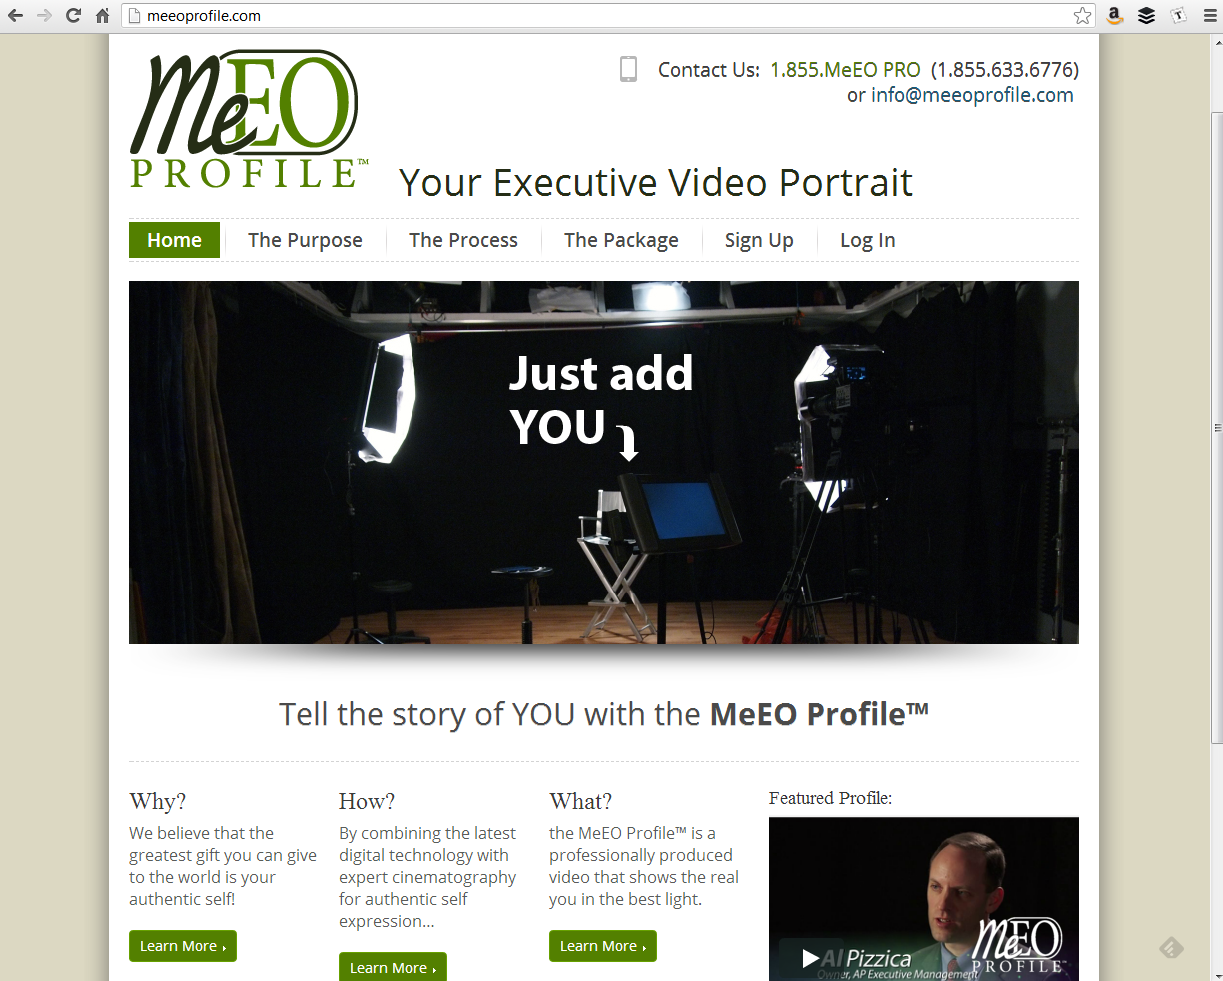 """<h4>MeEOProfile.com</h4>  The MeEO Profile™ website is powered by WordPress and a modified version of the <a href=""""http://wordpress.org/extend/themes/infoway"""" target=""""_blank"""">InfoWay theme</a>, with paid memberships, online appointment scheduling, and a custom-built """"Digital Video Business Card"""" for members.  MeEO Profile has been totally revamped since this iteration – <a href=""""http://www.laurensell.com/portfolio/web/#prettyPhoto[portfolio]/0/"""" target=""""_blank"""" class=""""link"""">Check out the redesign! →</a>"""